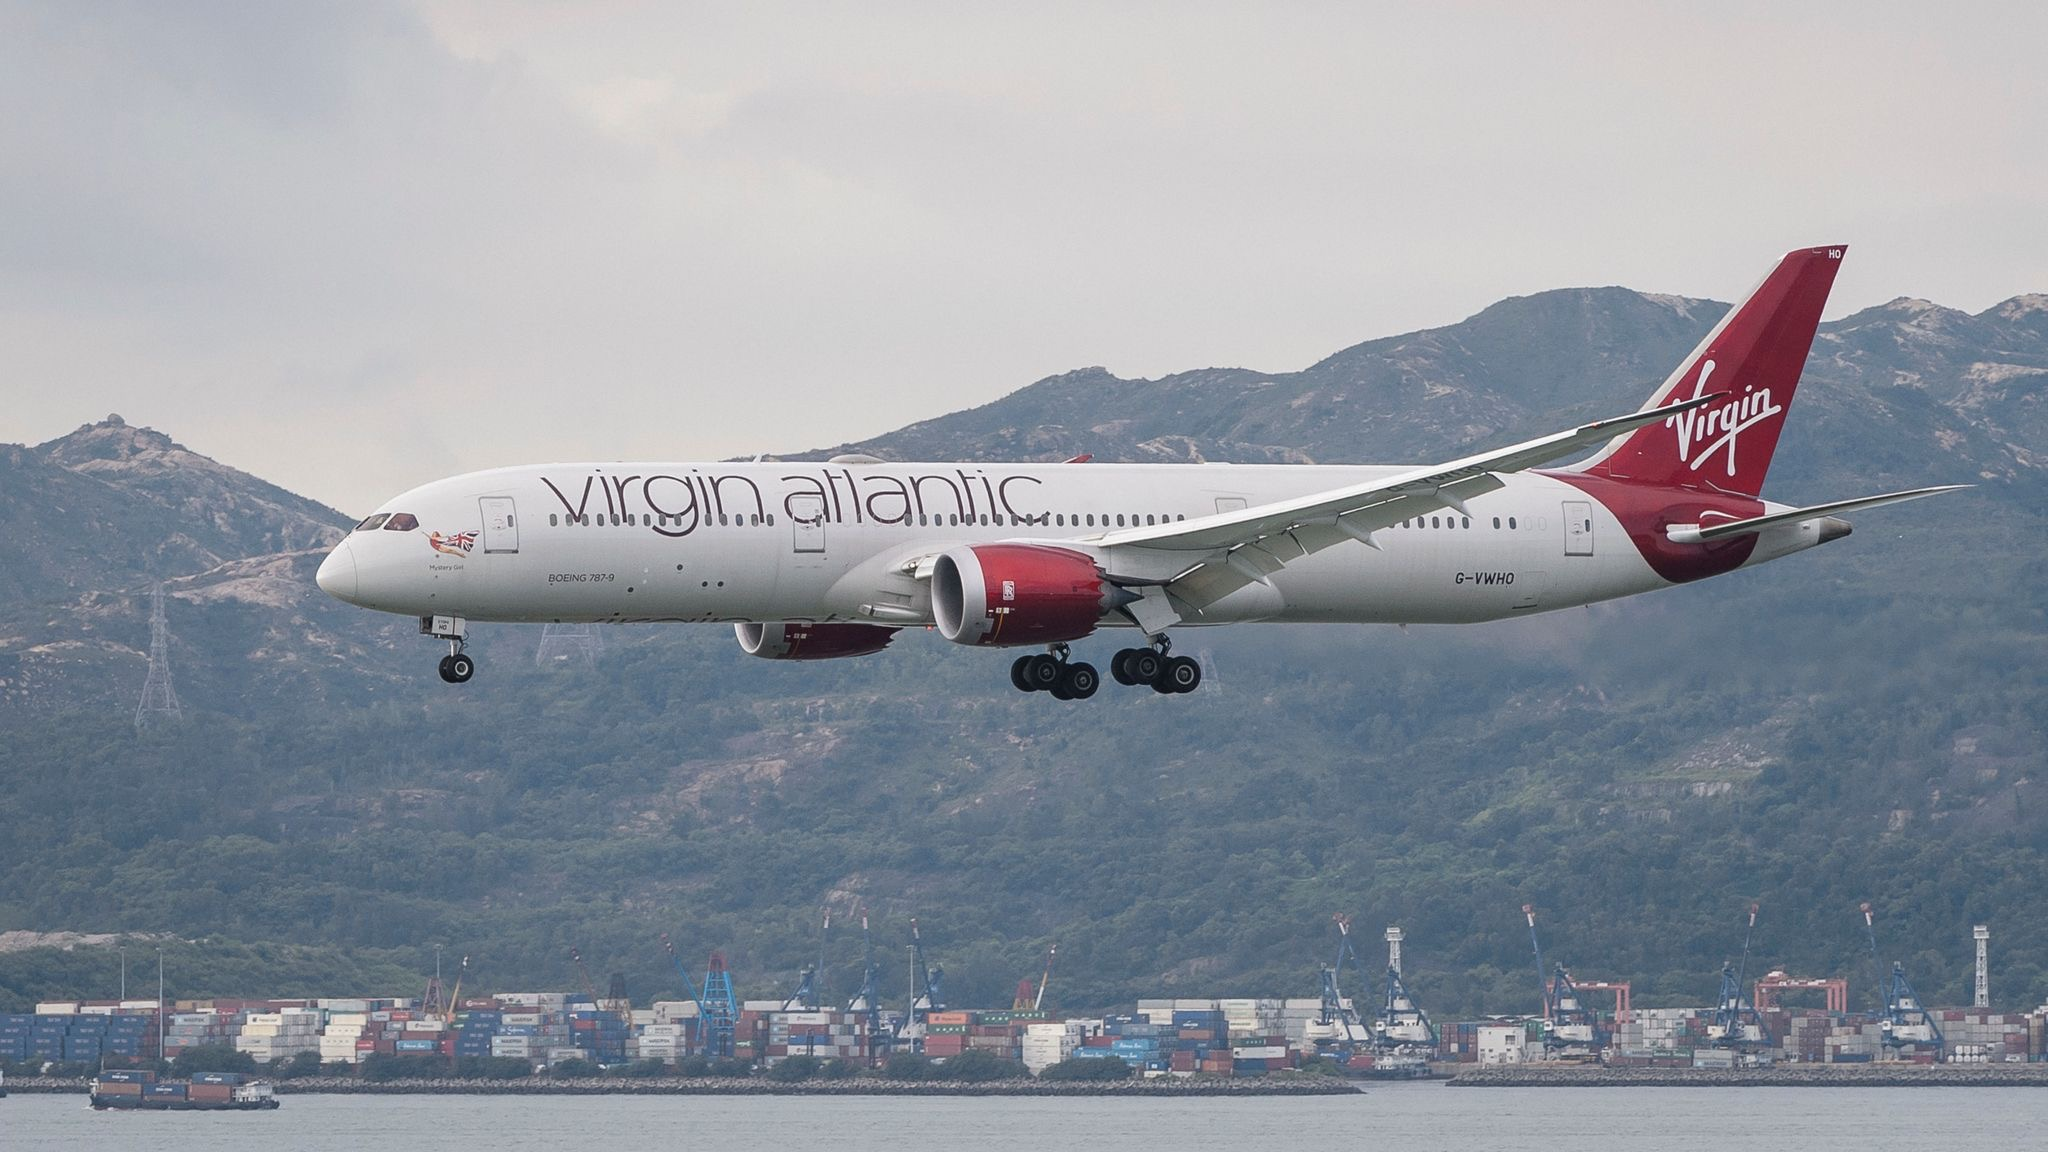 BREAKING: Virgin Atlantic are set to cut another 1,000 jobs after £1.2bn rescue